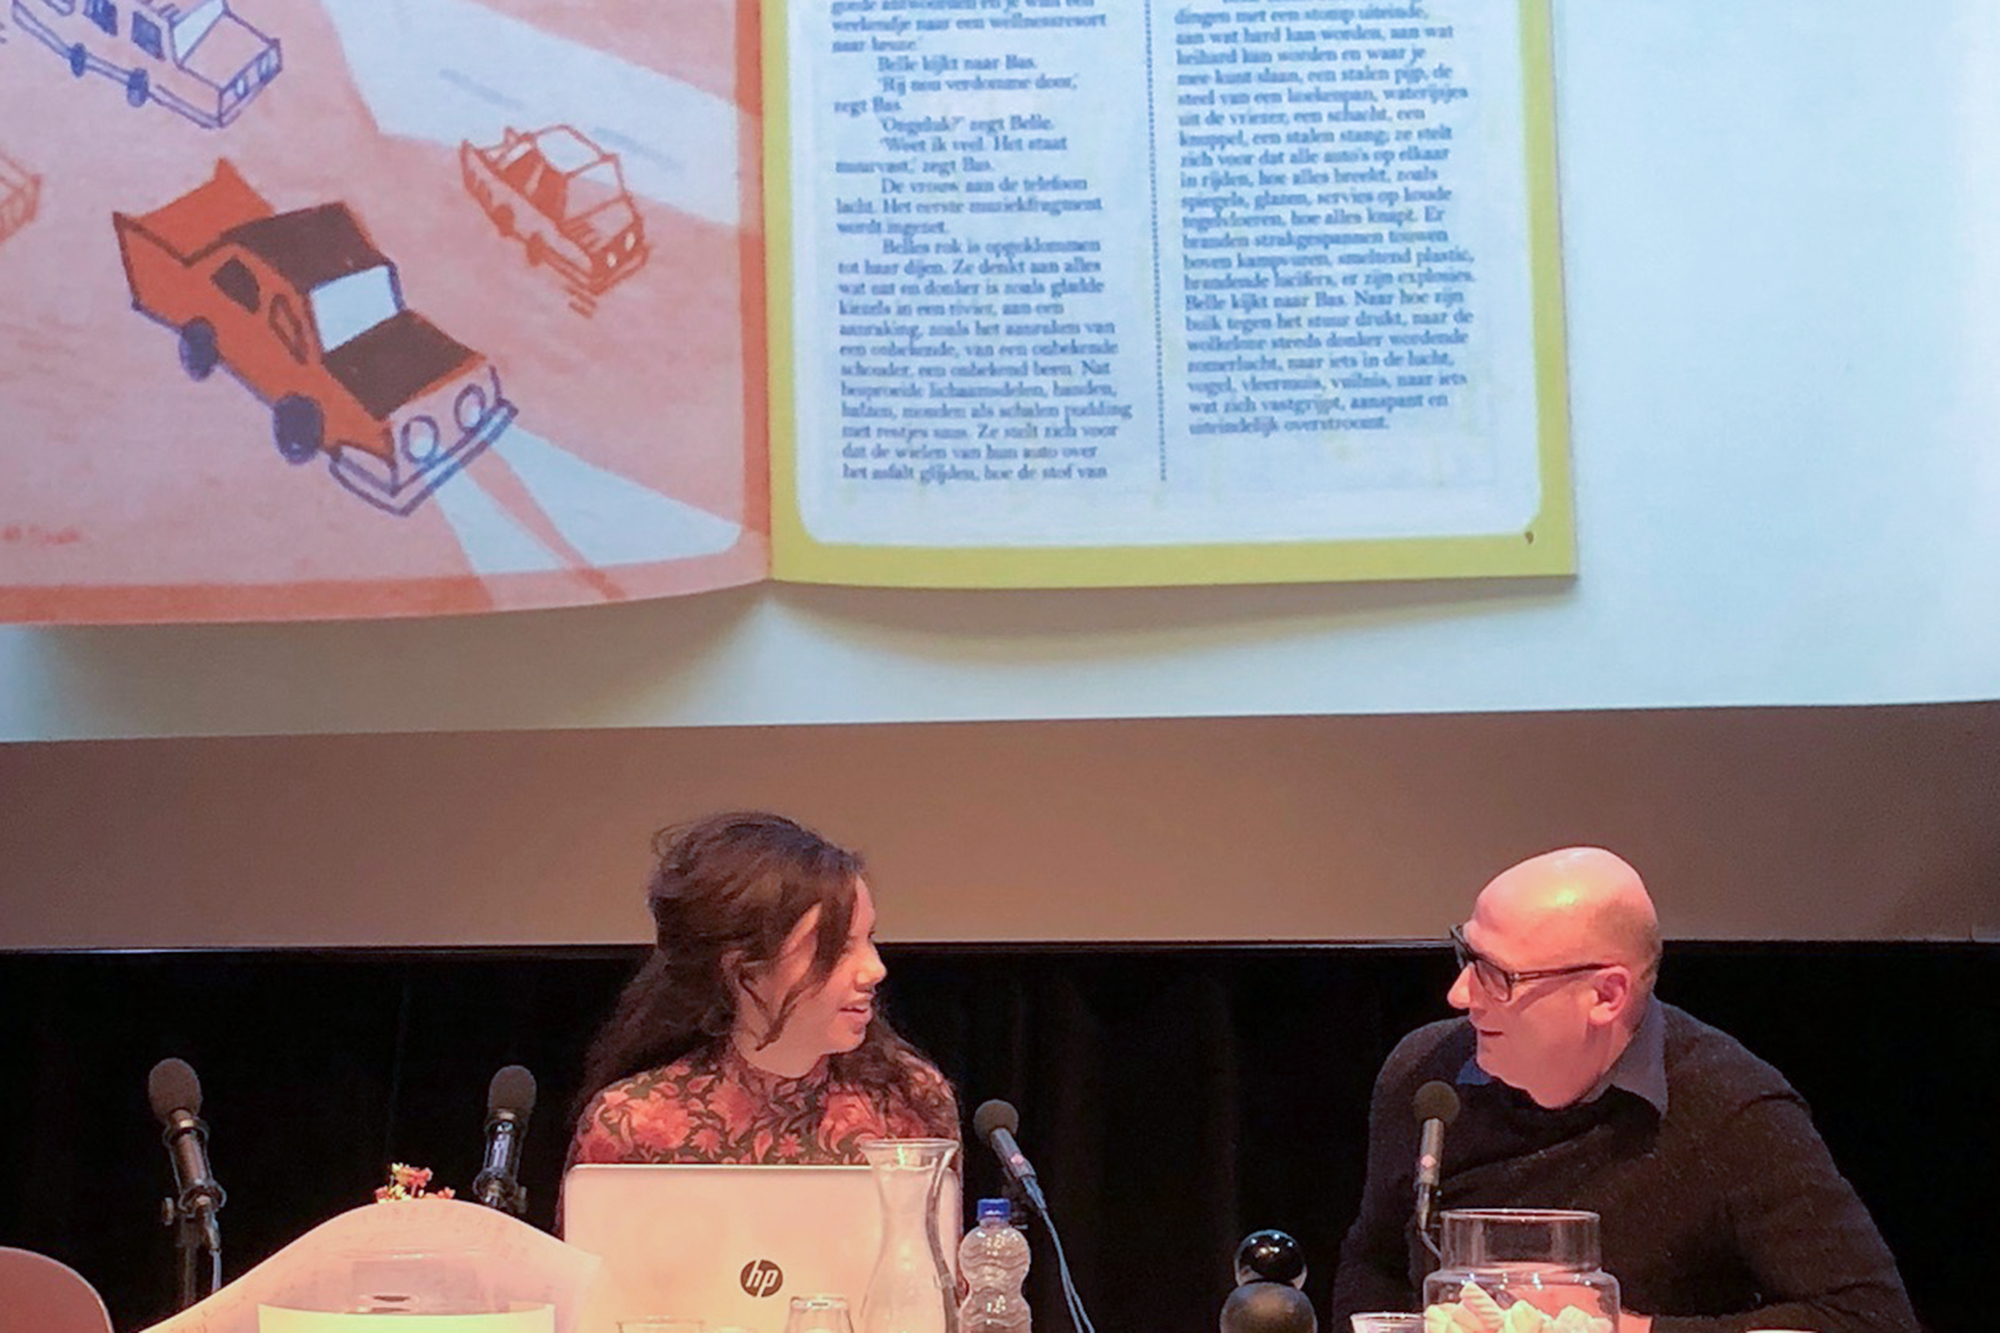 Writer Annemarie de Gee and Jeroen de Leijer